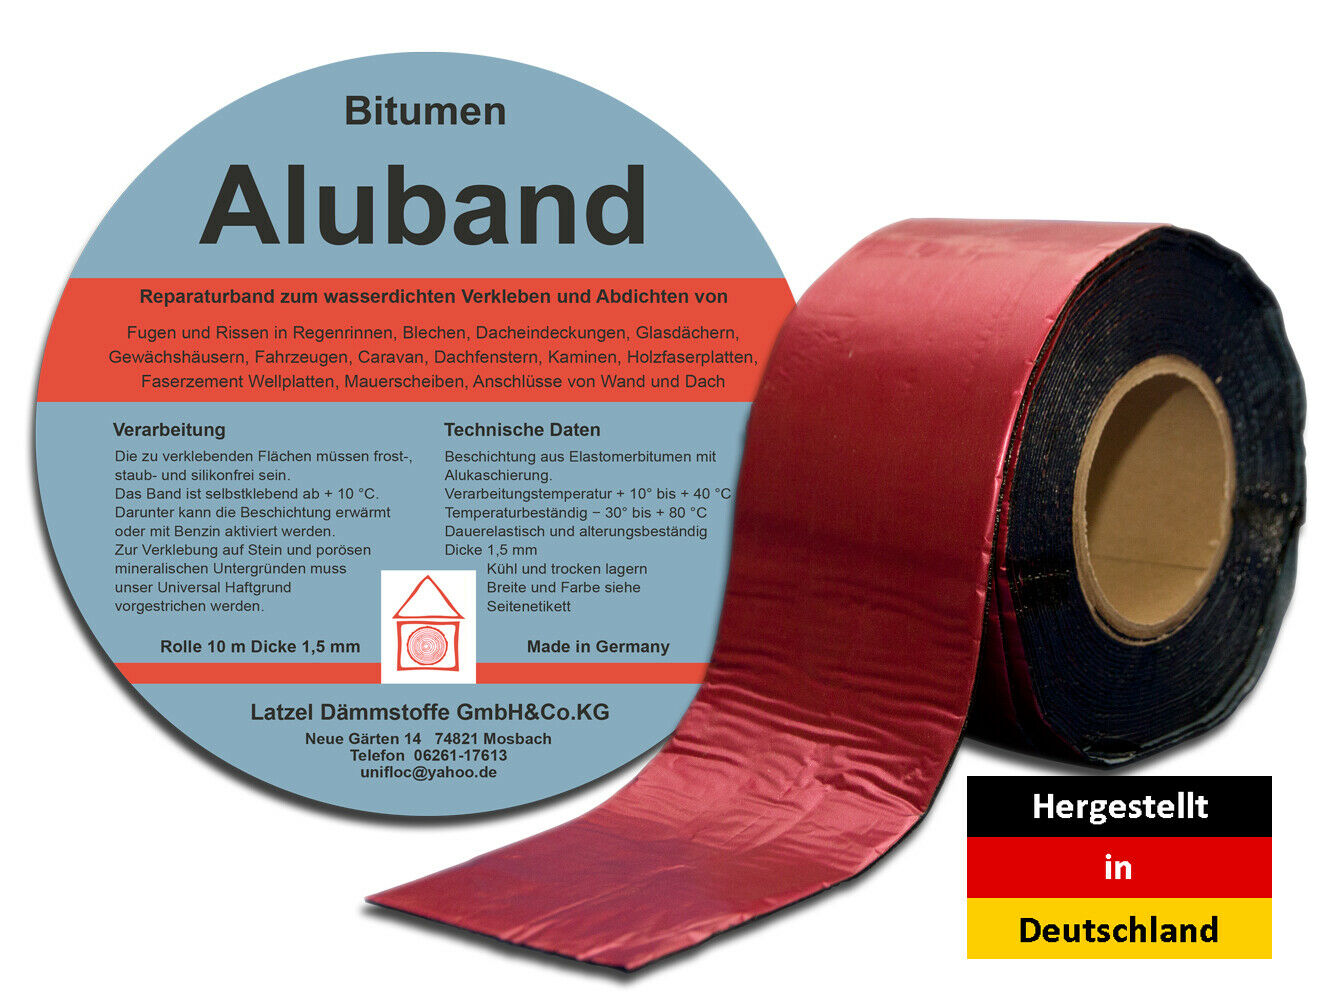 bitumen aluband reparaturband farbe rot 150 mm eur 12 60 picclick de. Black Bedroom Furniture Sets. Home Design Ideas